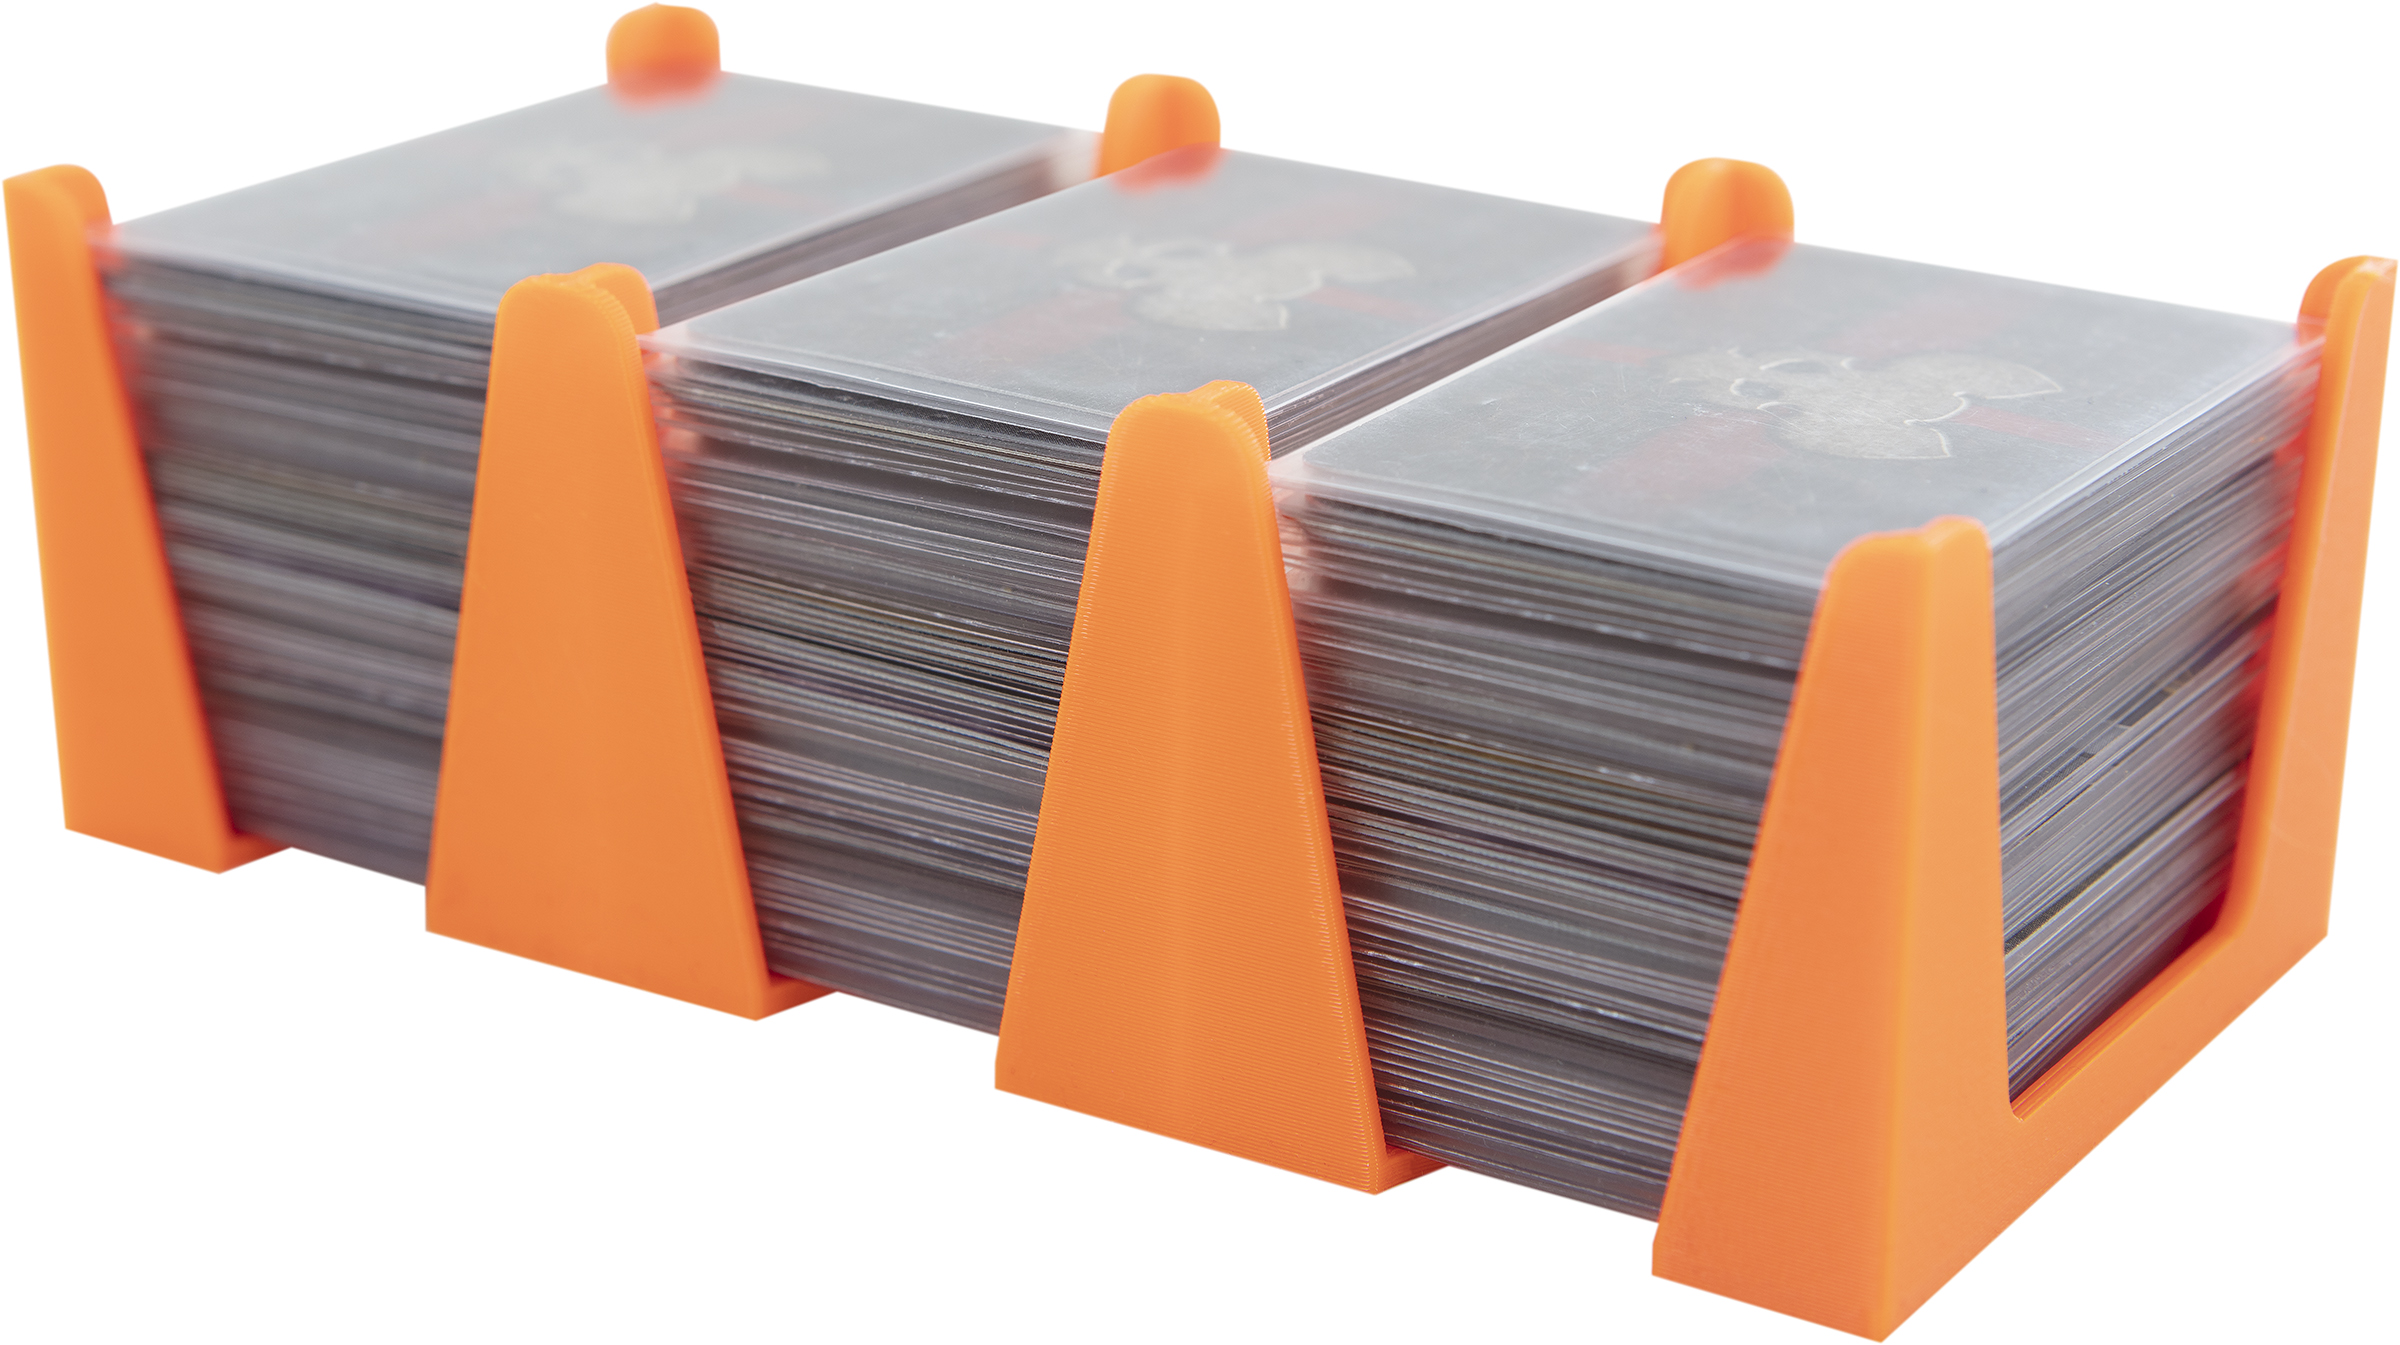 Feldherr Card Holder for game cards in Mini European Board Game Size - 450 cards - 3 trays